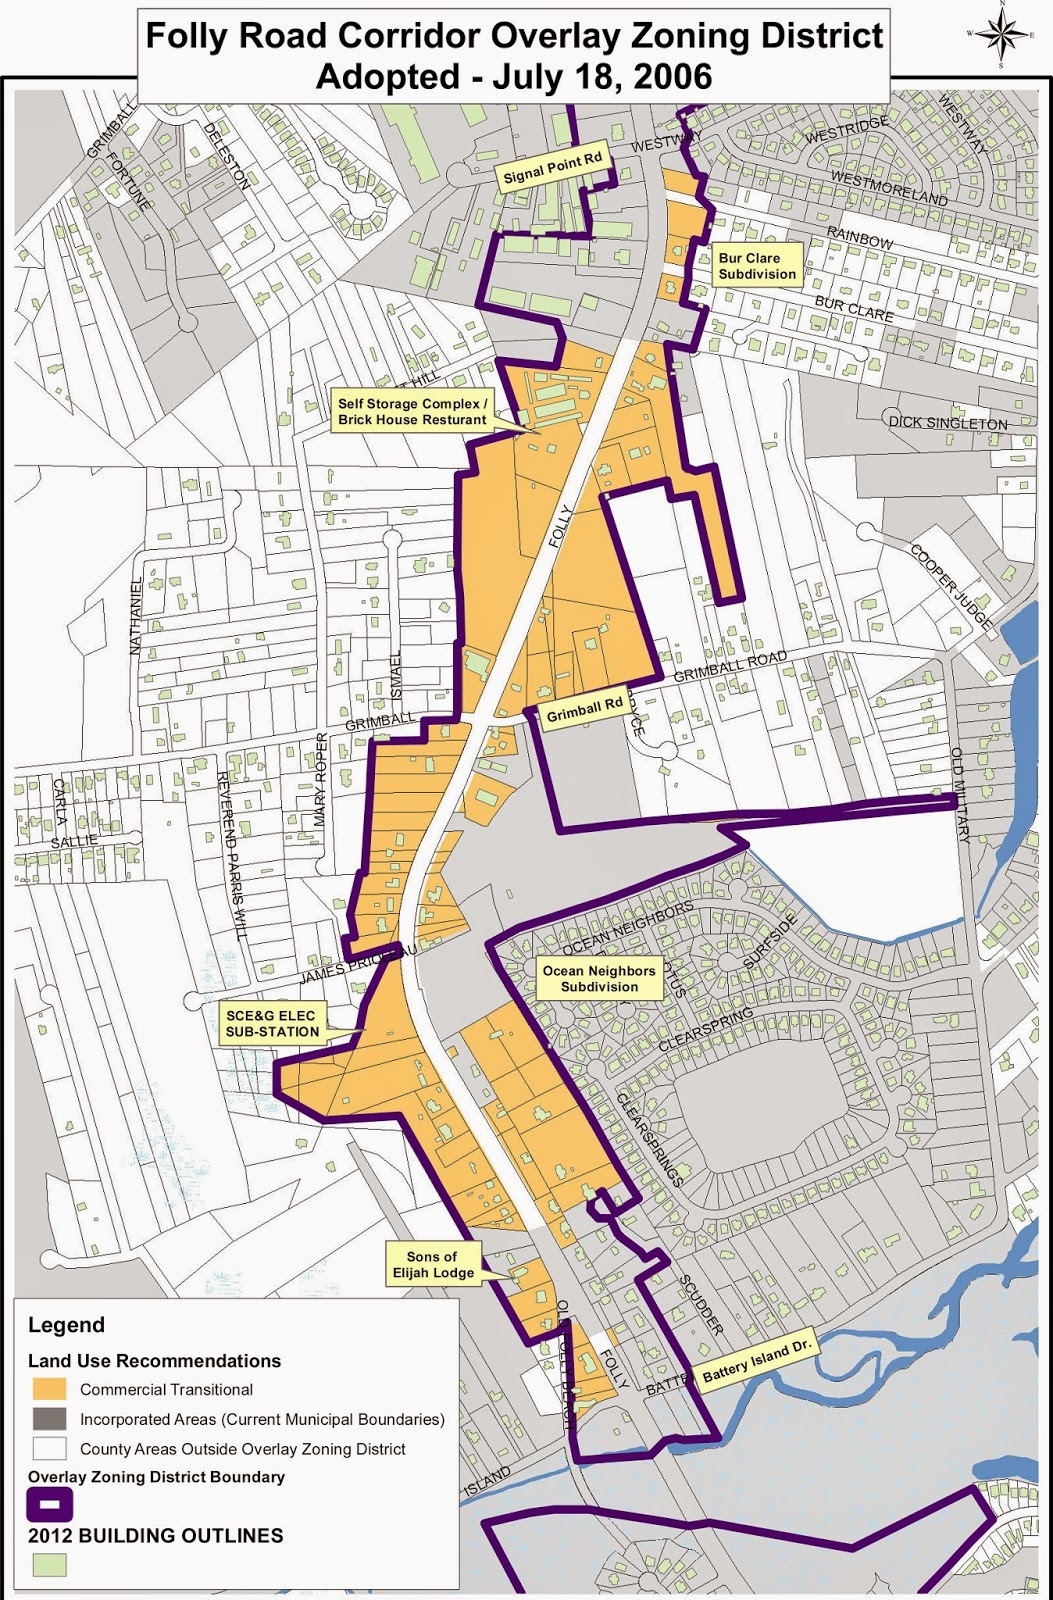 Mayor's Corner: More on the Folly Road Overlay District on